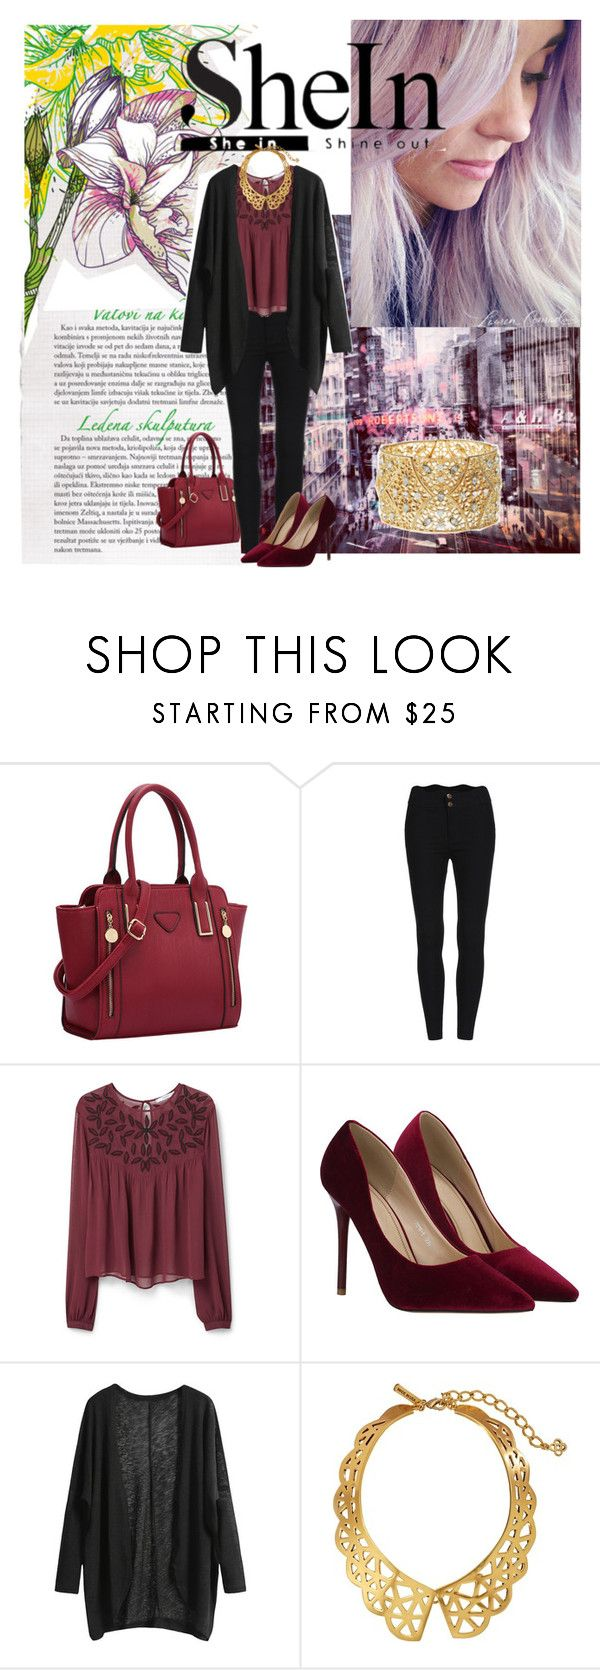 """""""A roupa e a cidade."""" by anawinchester ❤ liked on Polyvore featuring MANGO, Oscar de la Renta and Charlotte Russe"""